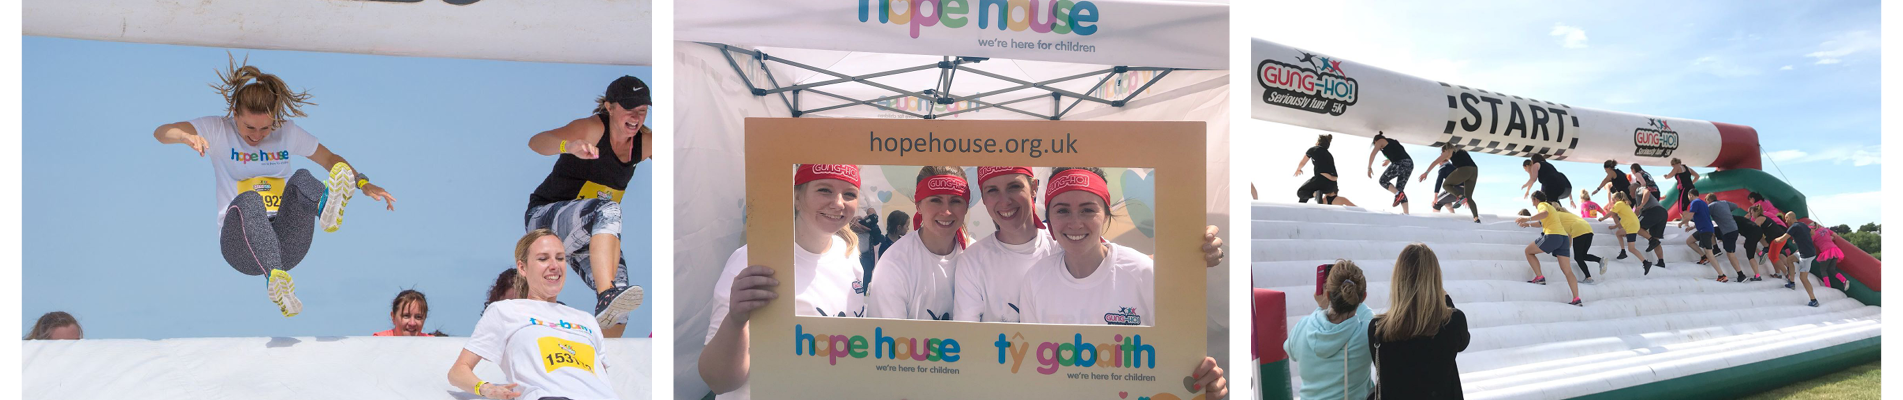 Team Entyce tackles Gung-Ho for Hope House